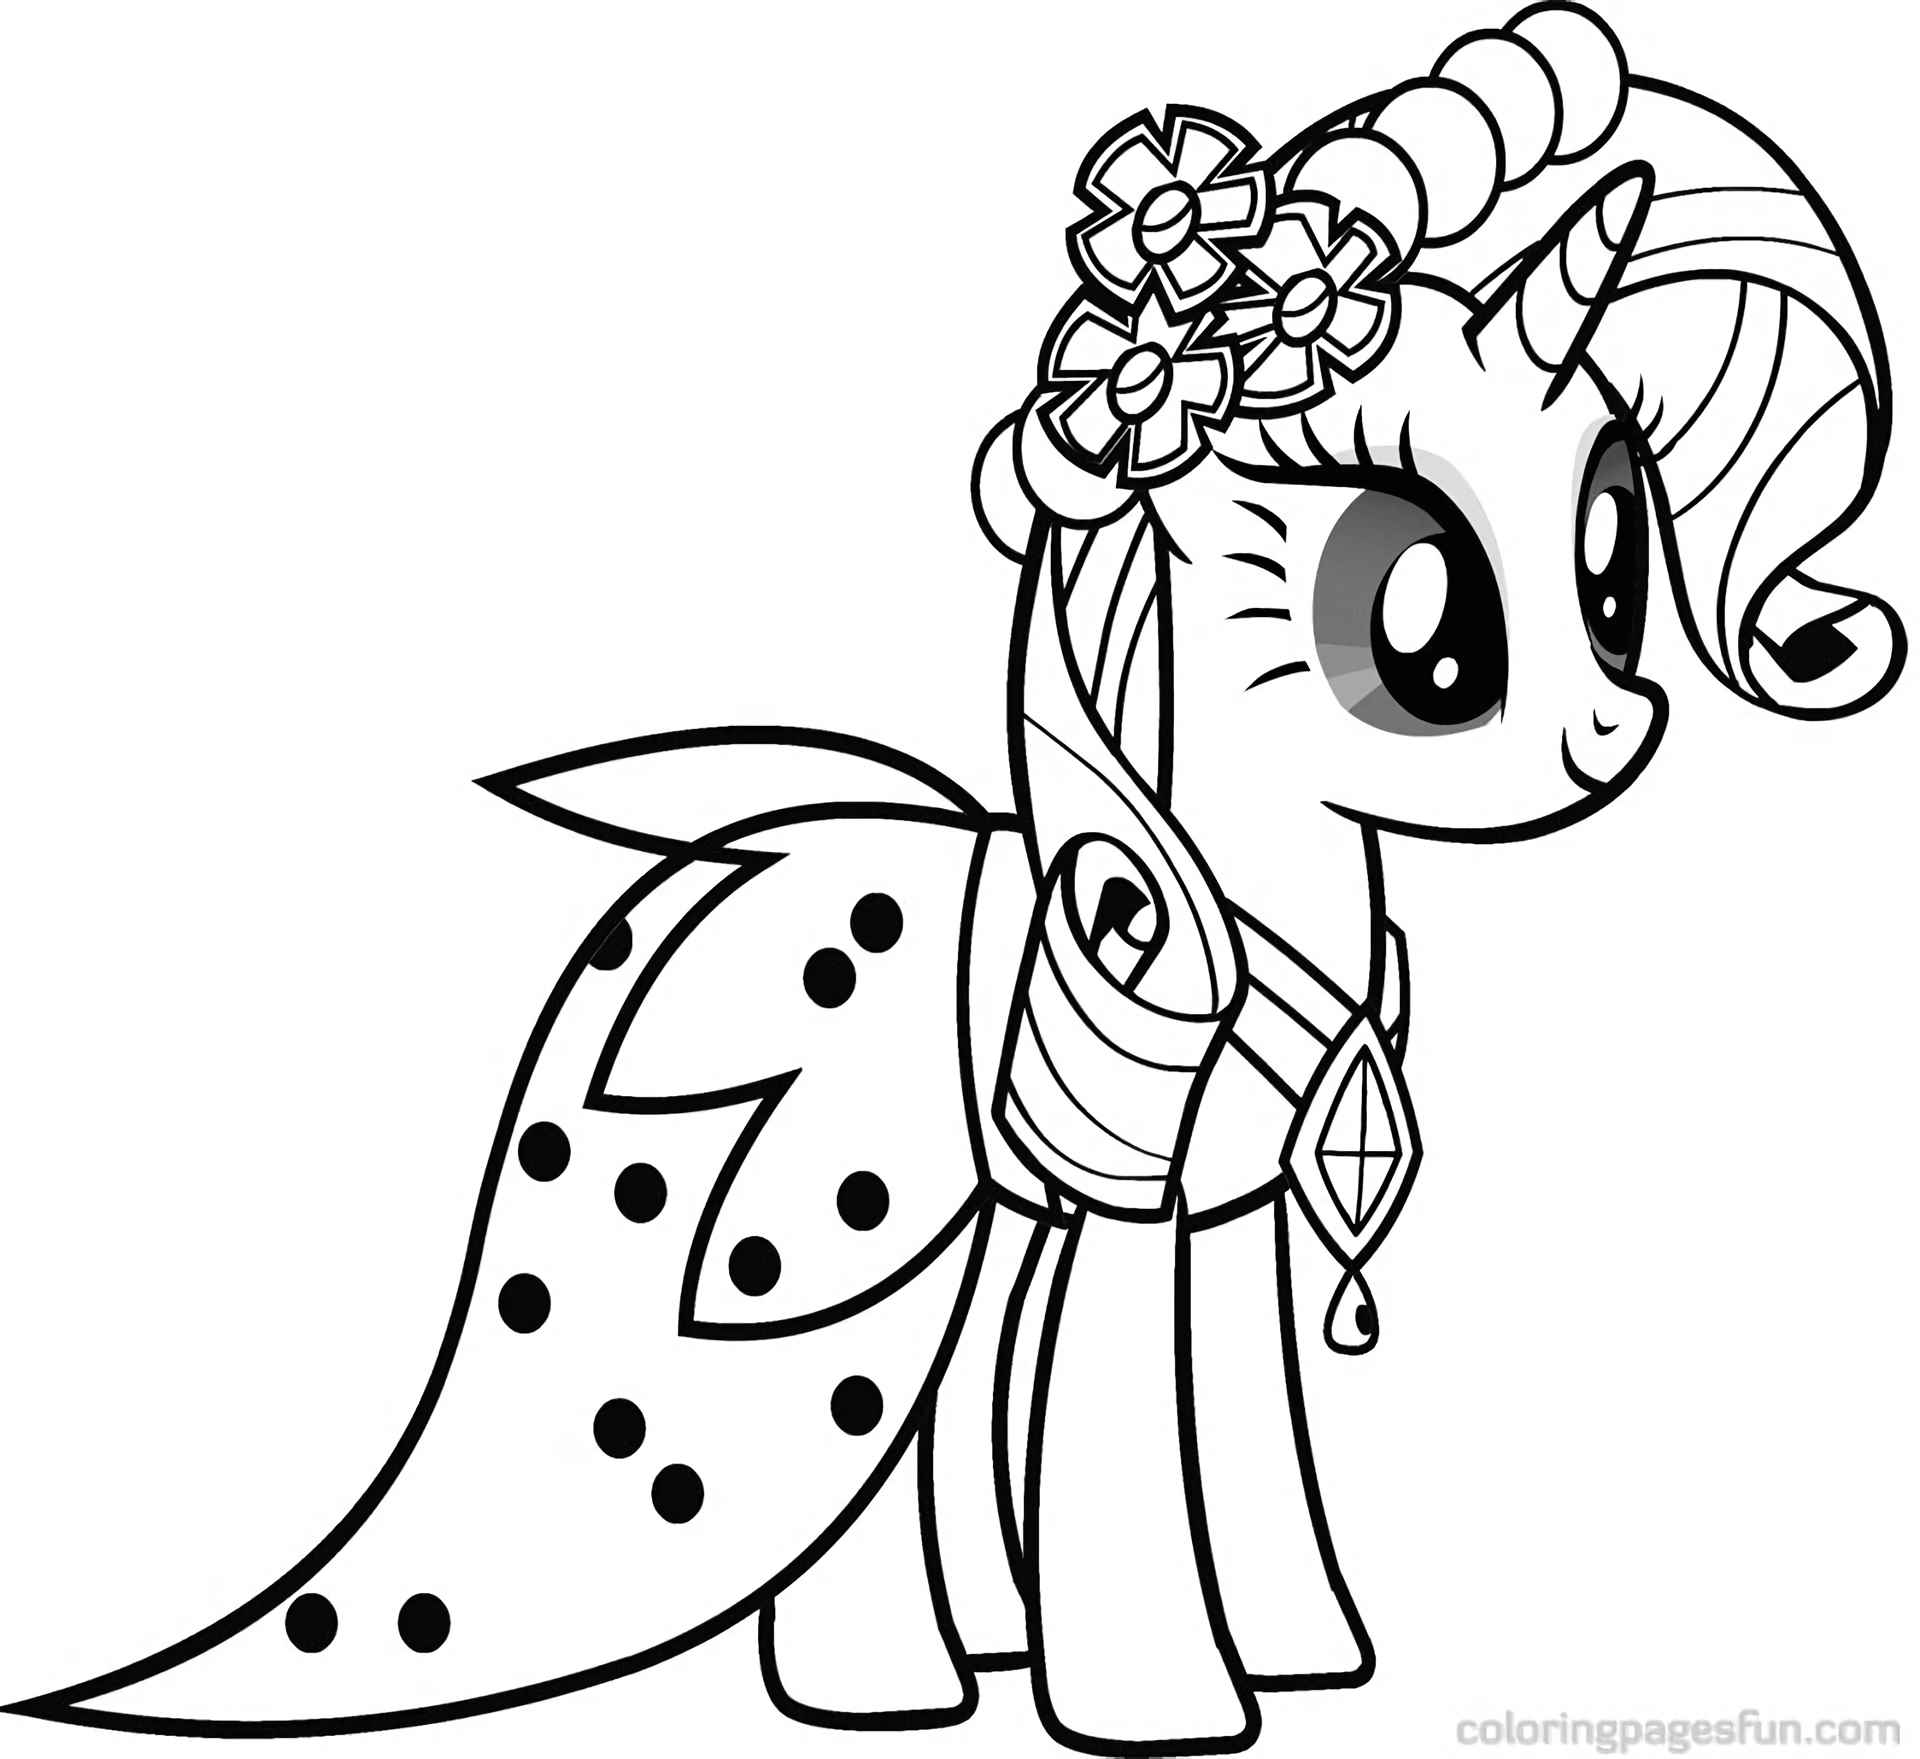 Gorgeous Rarity In An Elegant Outfit Coloring Page